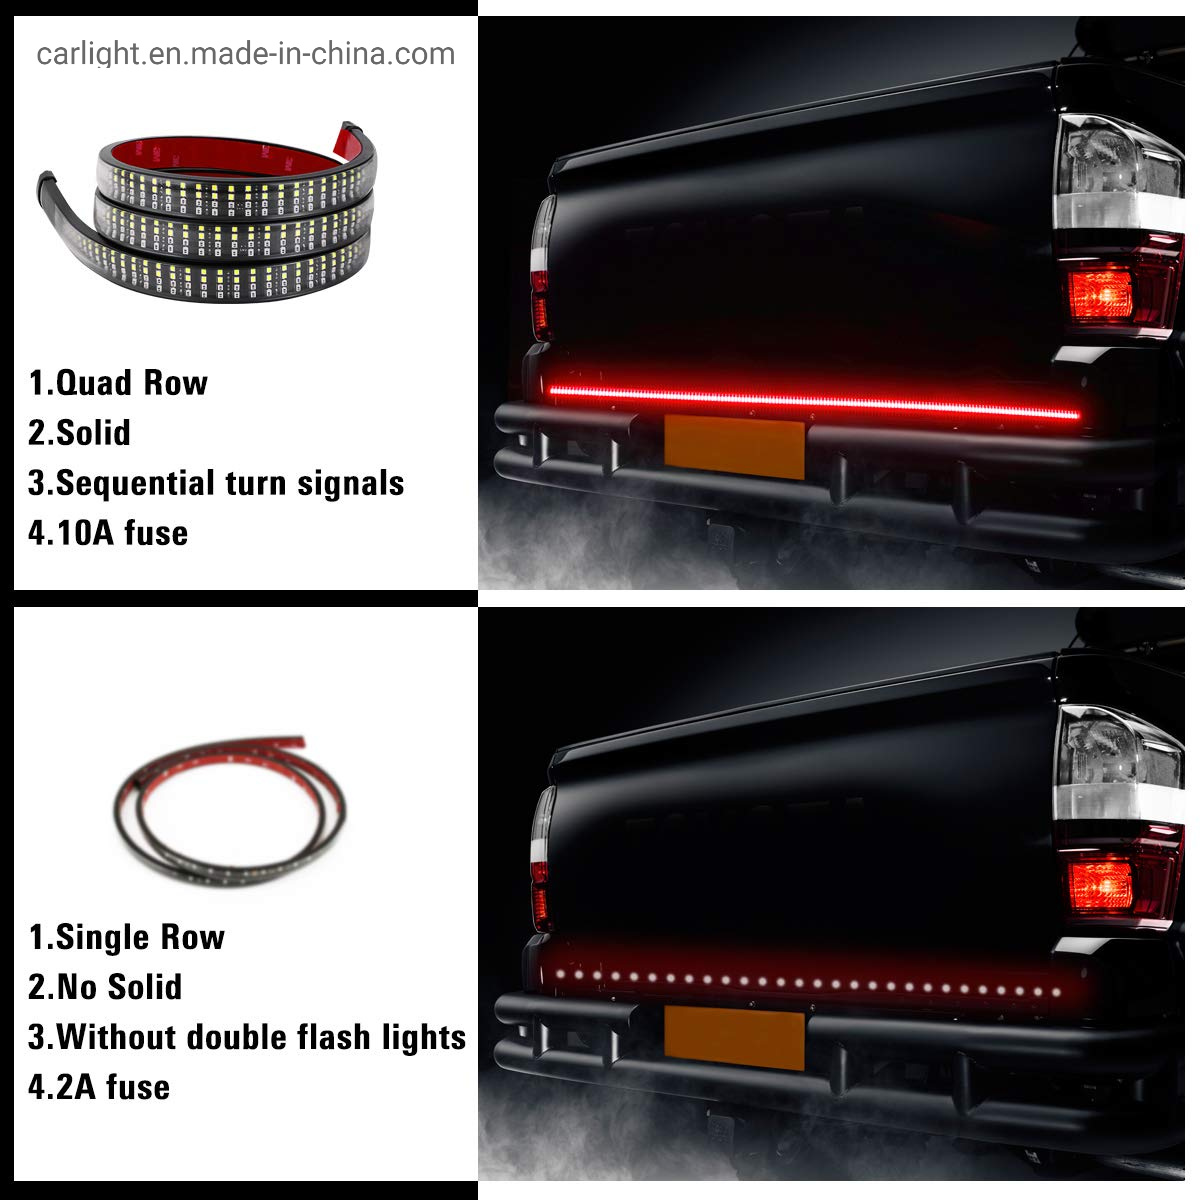 60 Inches Tailgate Light Bar Double-Row LED Light Strip Brake Running Turn Signal Reverse Tail Lights for Trucks Trailer Pickup Car RV VAN Jeep Towing Vehicle,Red White,No-Drill